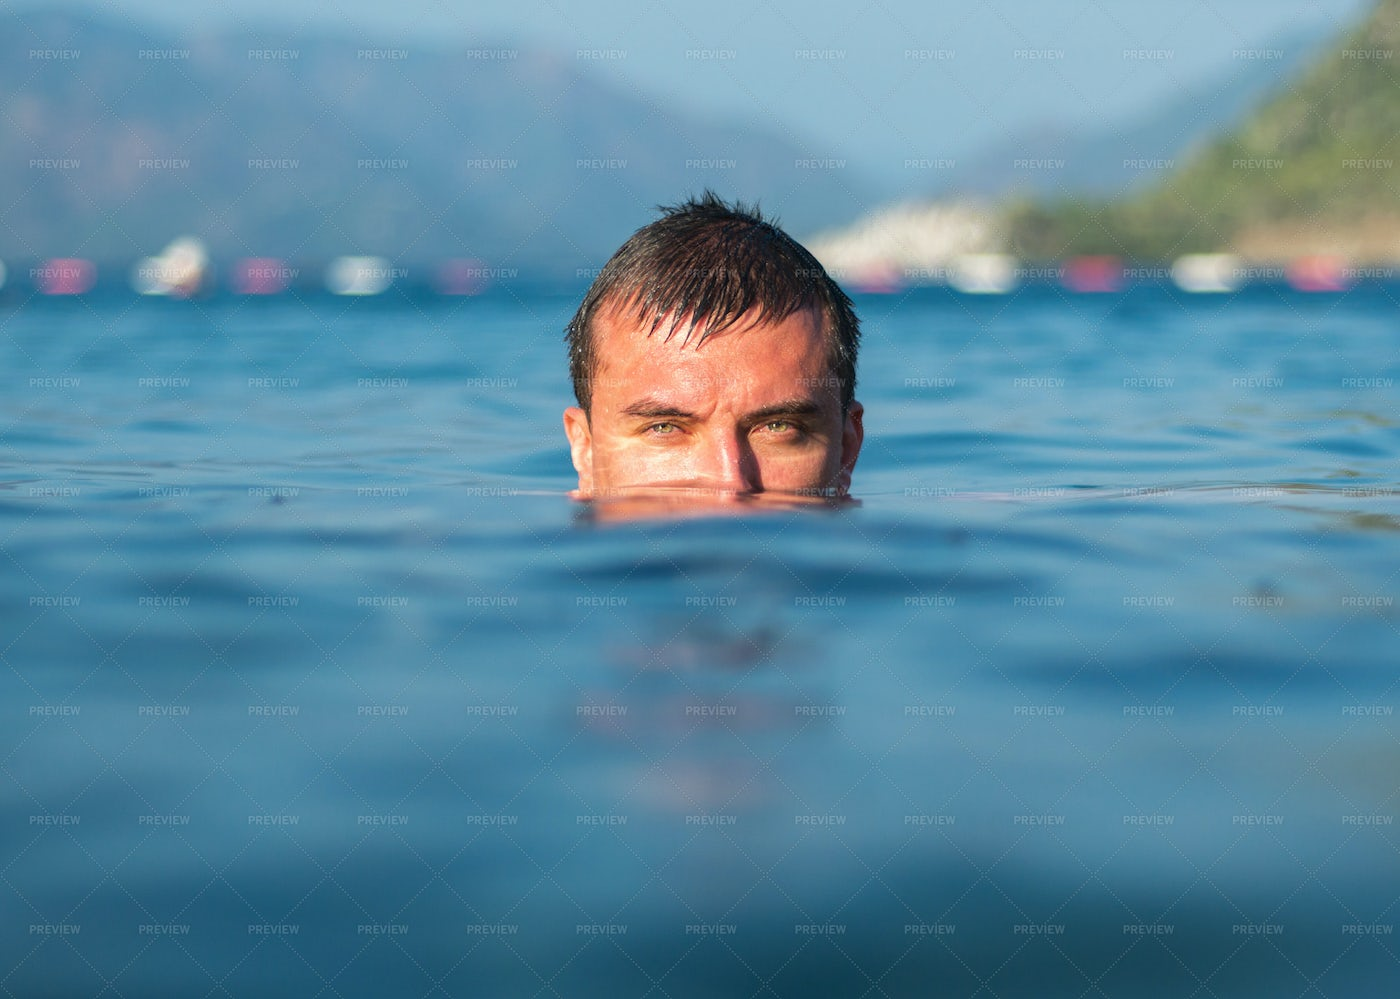 Half Face Immersed In Water: Stock Photos